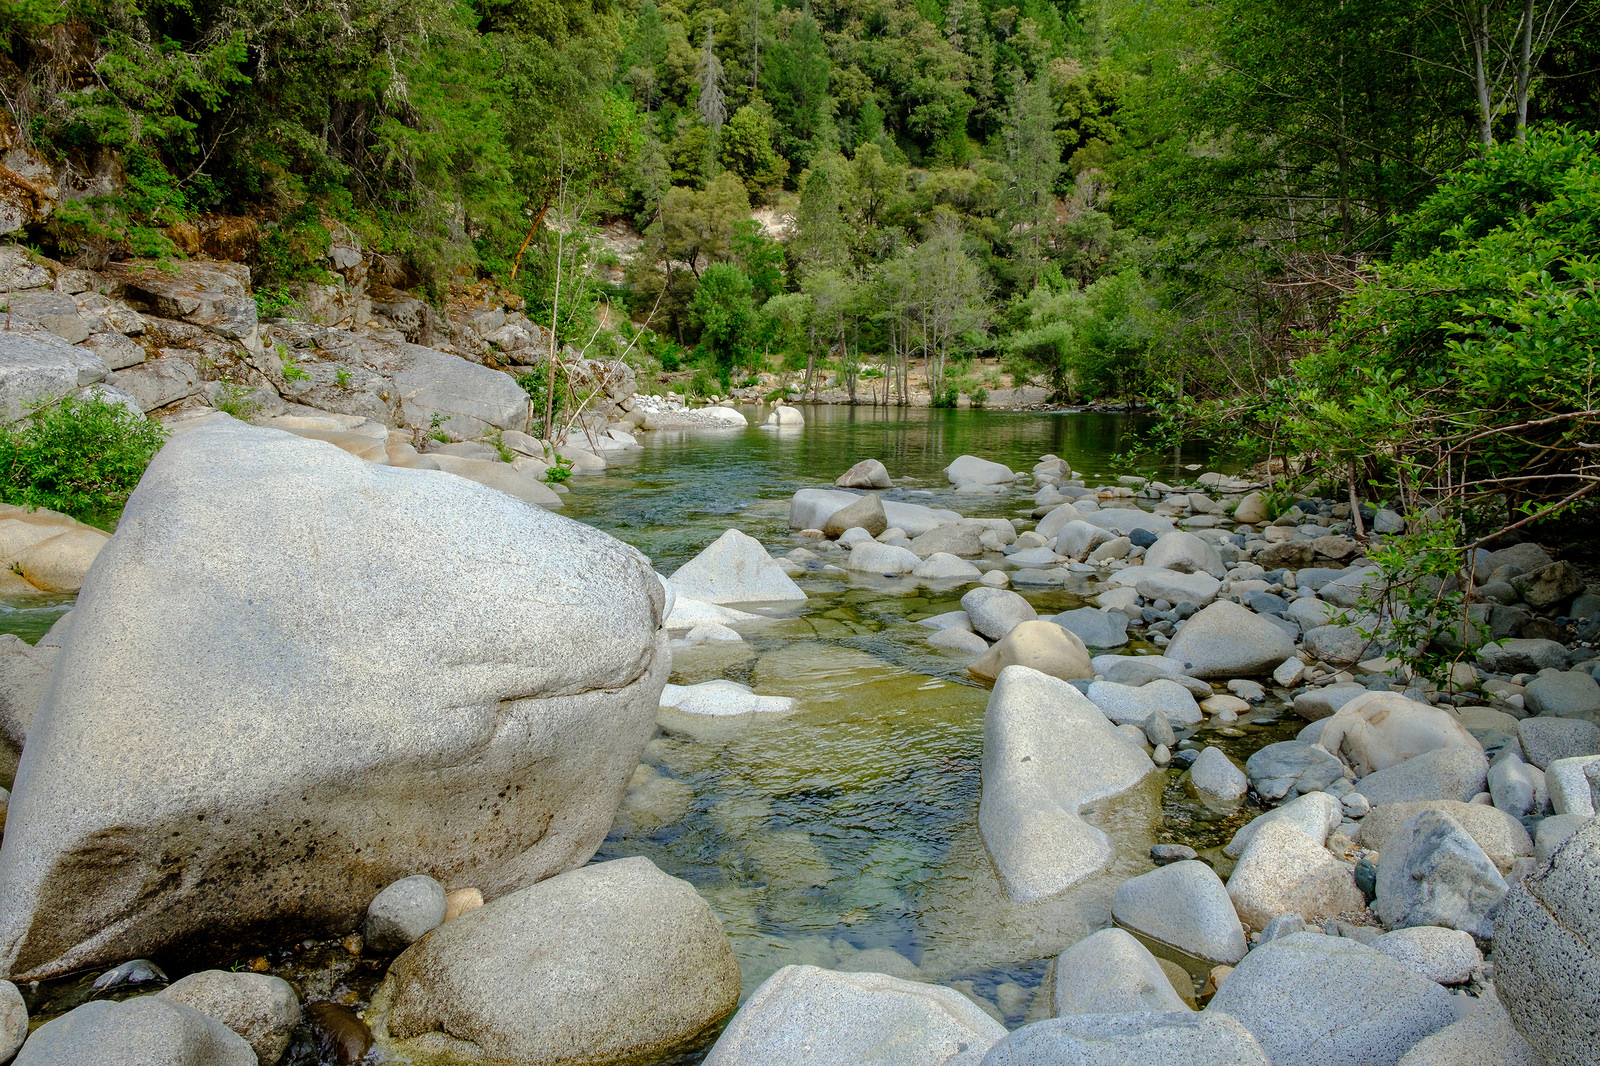 When you cross the bridge, you will find a large parking lot with bathrooms, park tables and a sandy beach that gives you access to this large open section of the river. You can swim and even use the rope swing.